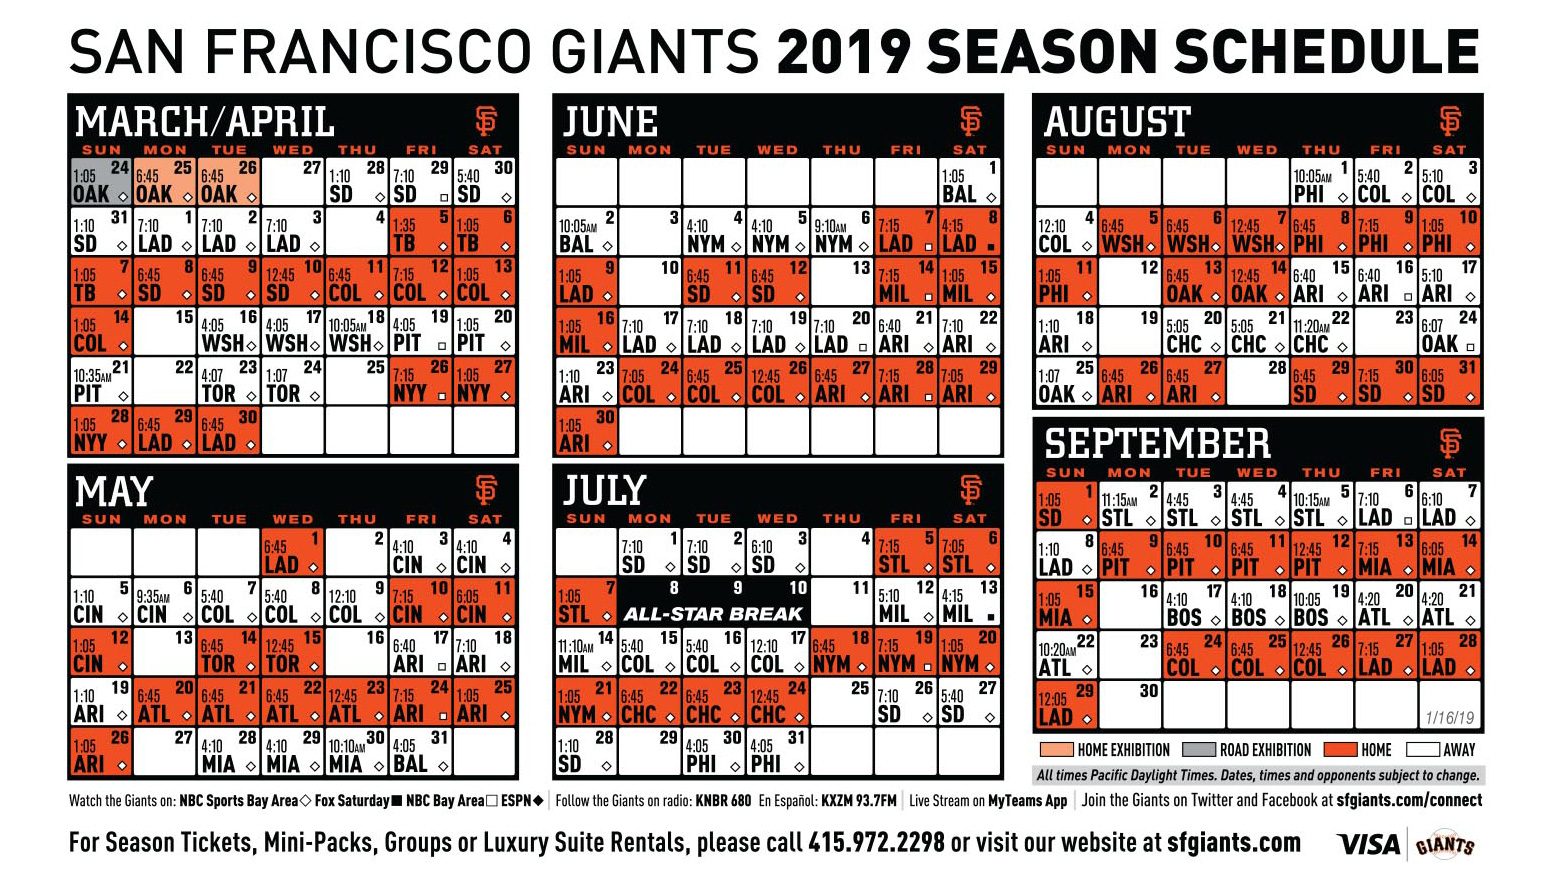 photograph about Houston Astros Printable Schedule identify Giants 2019 Printable Program San Francisco Giants